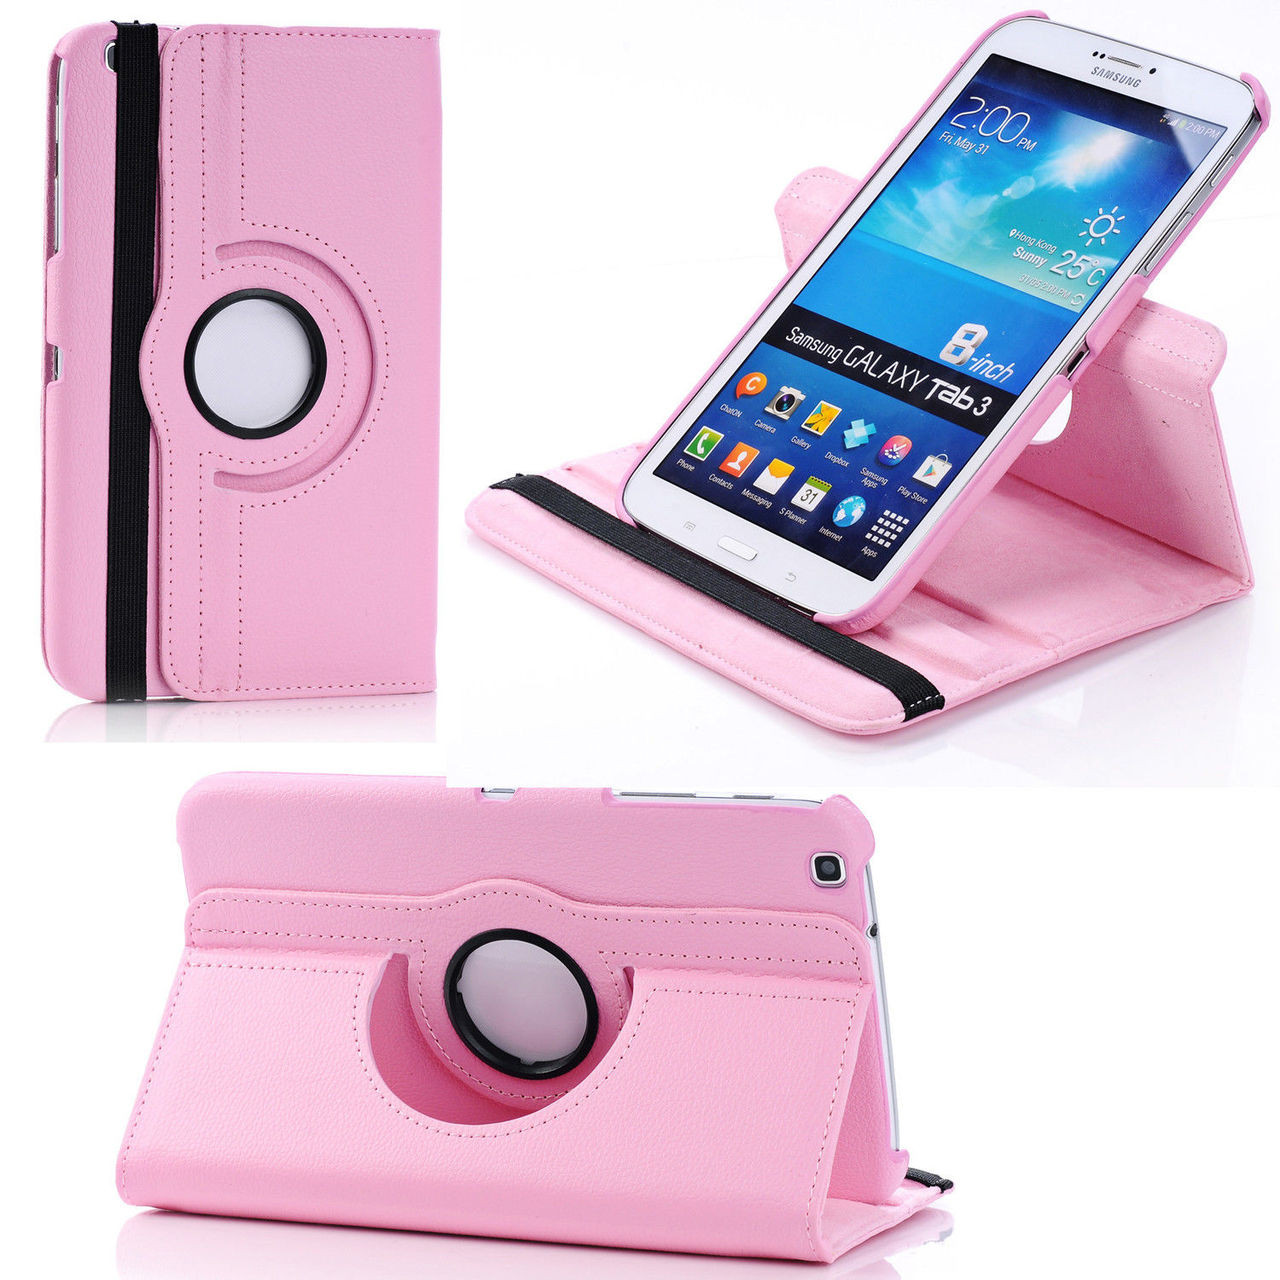 big sale 662f6 efb00 Samsung Galaxy Tab 4 8.0 T330 T331 T335 360 Case Cover Tab4 8 inch